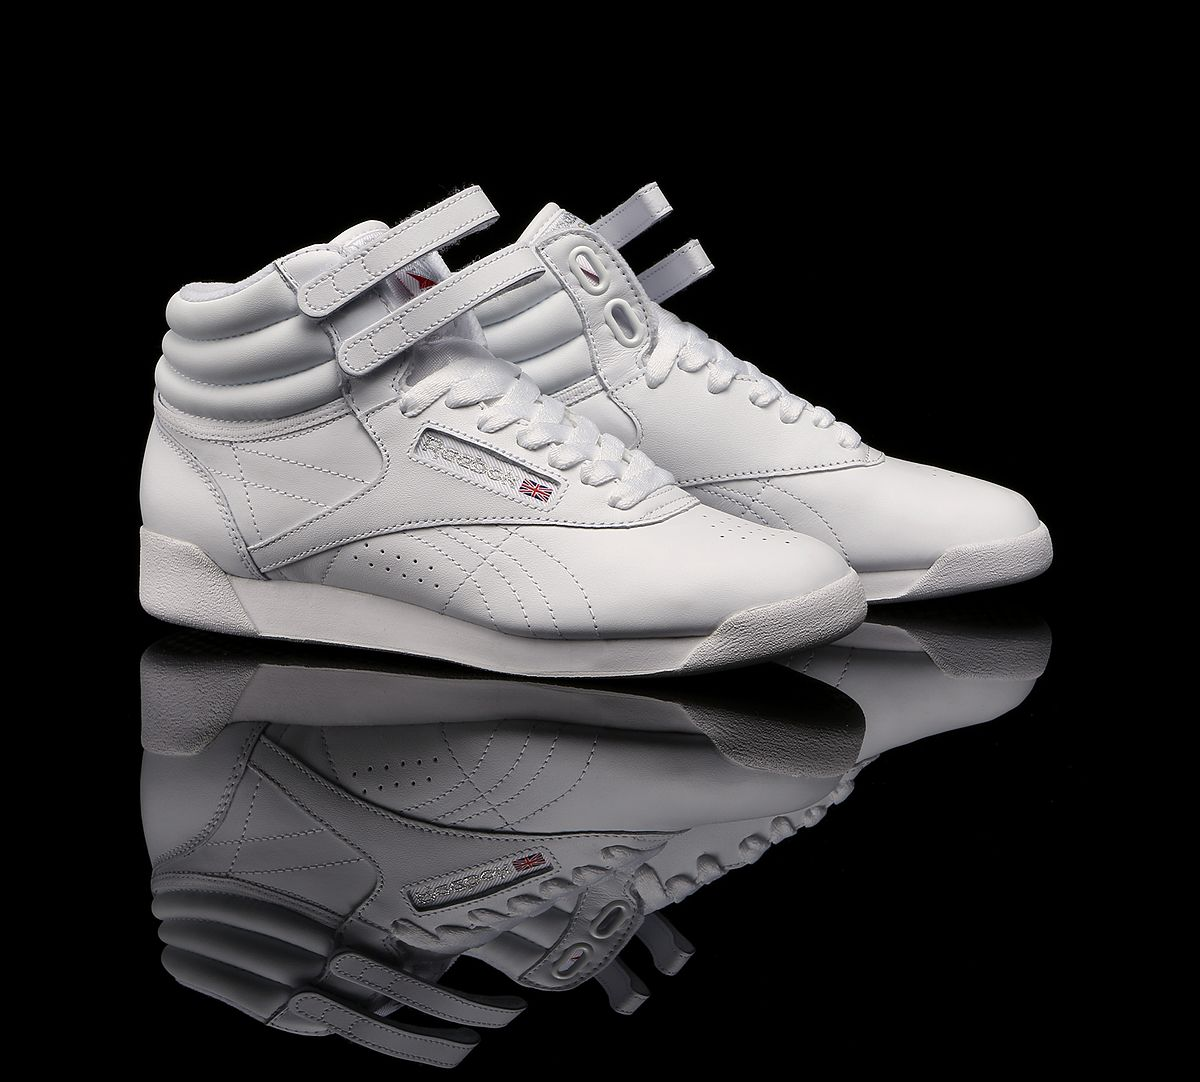 67a39e28119d3 Reebok Freestyle - Wikipedia